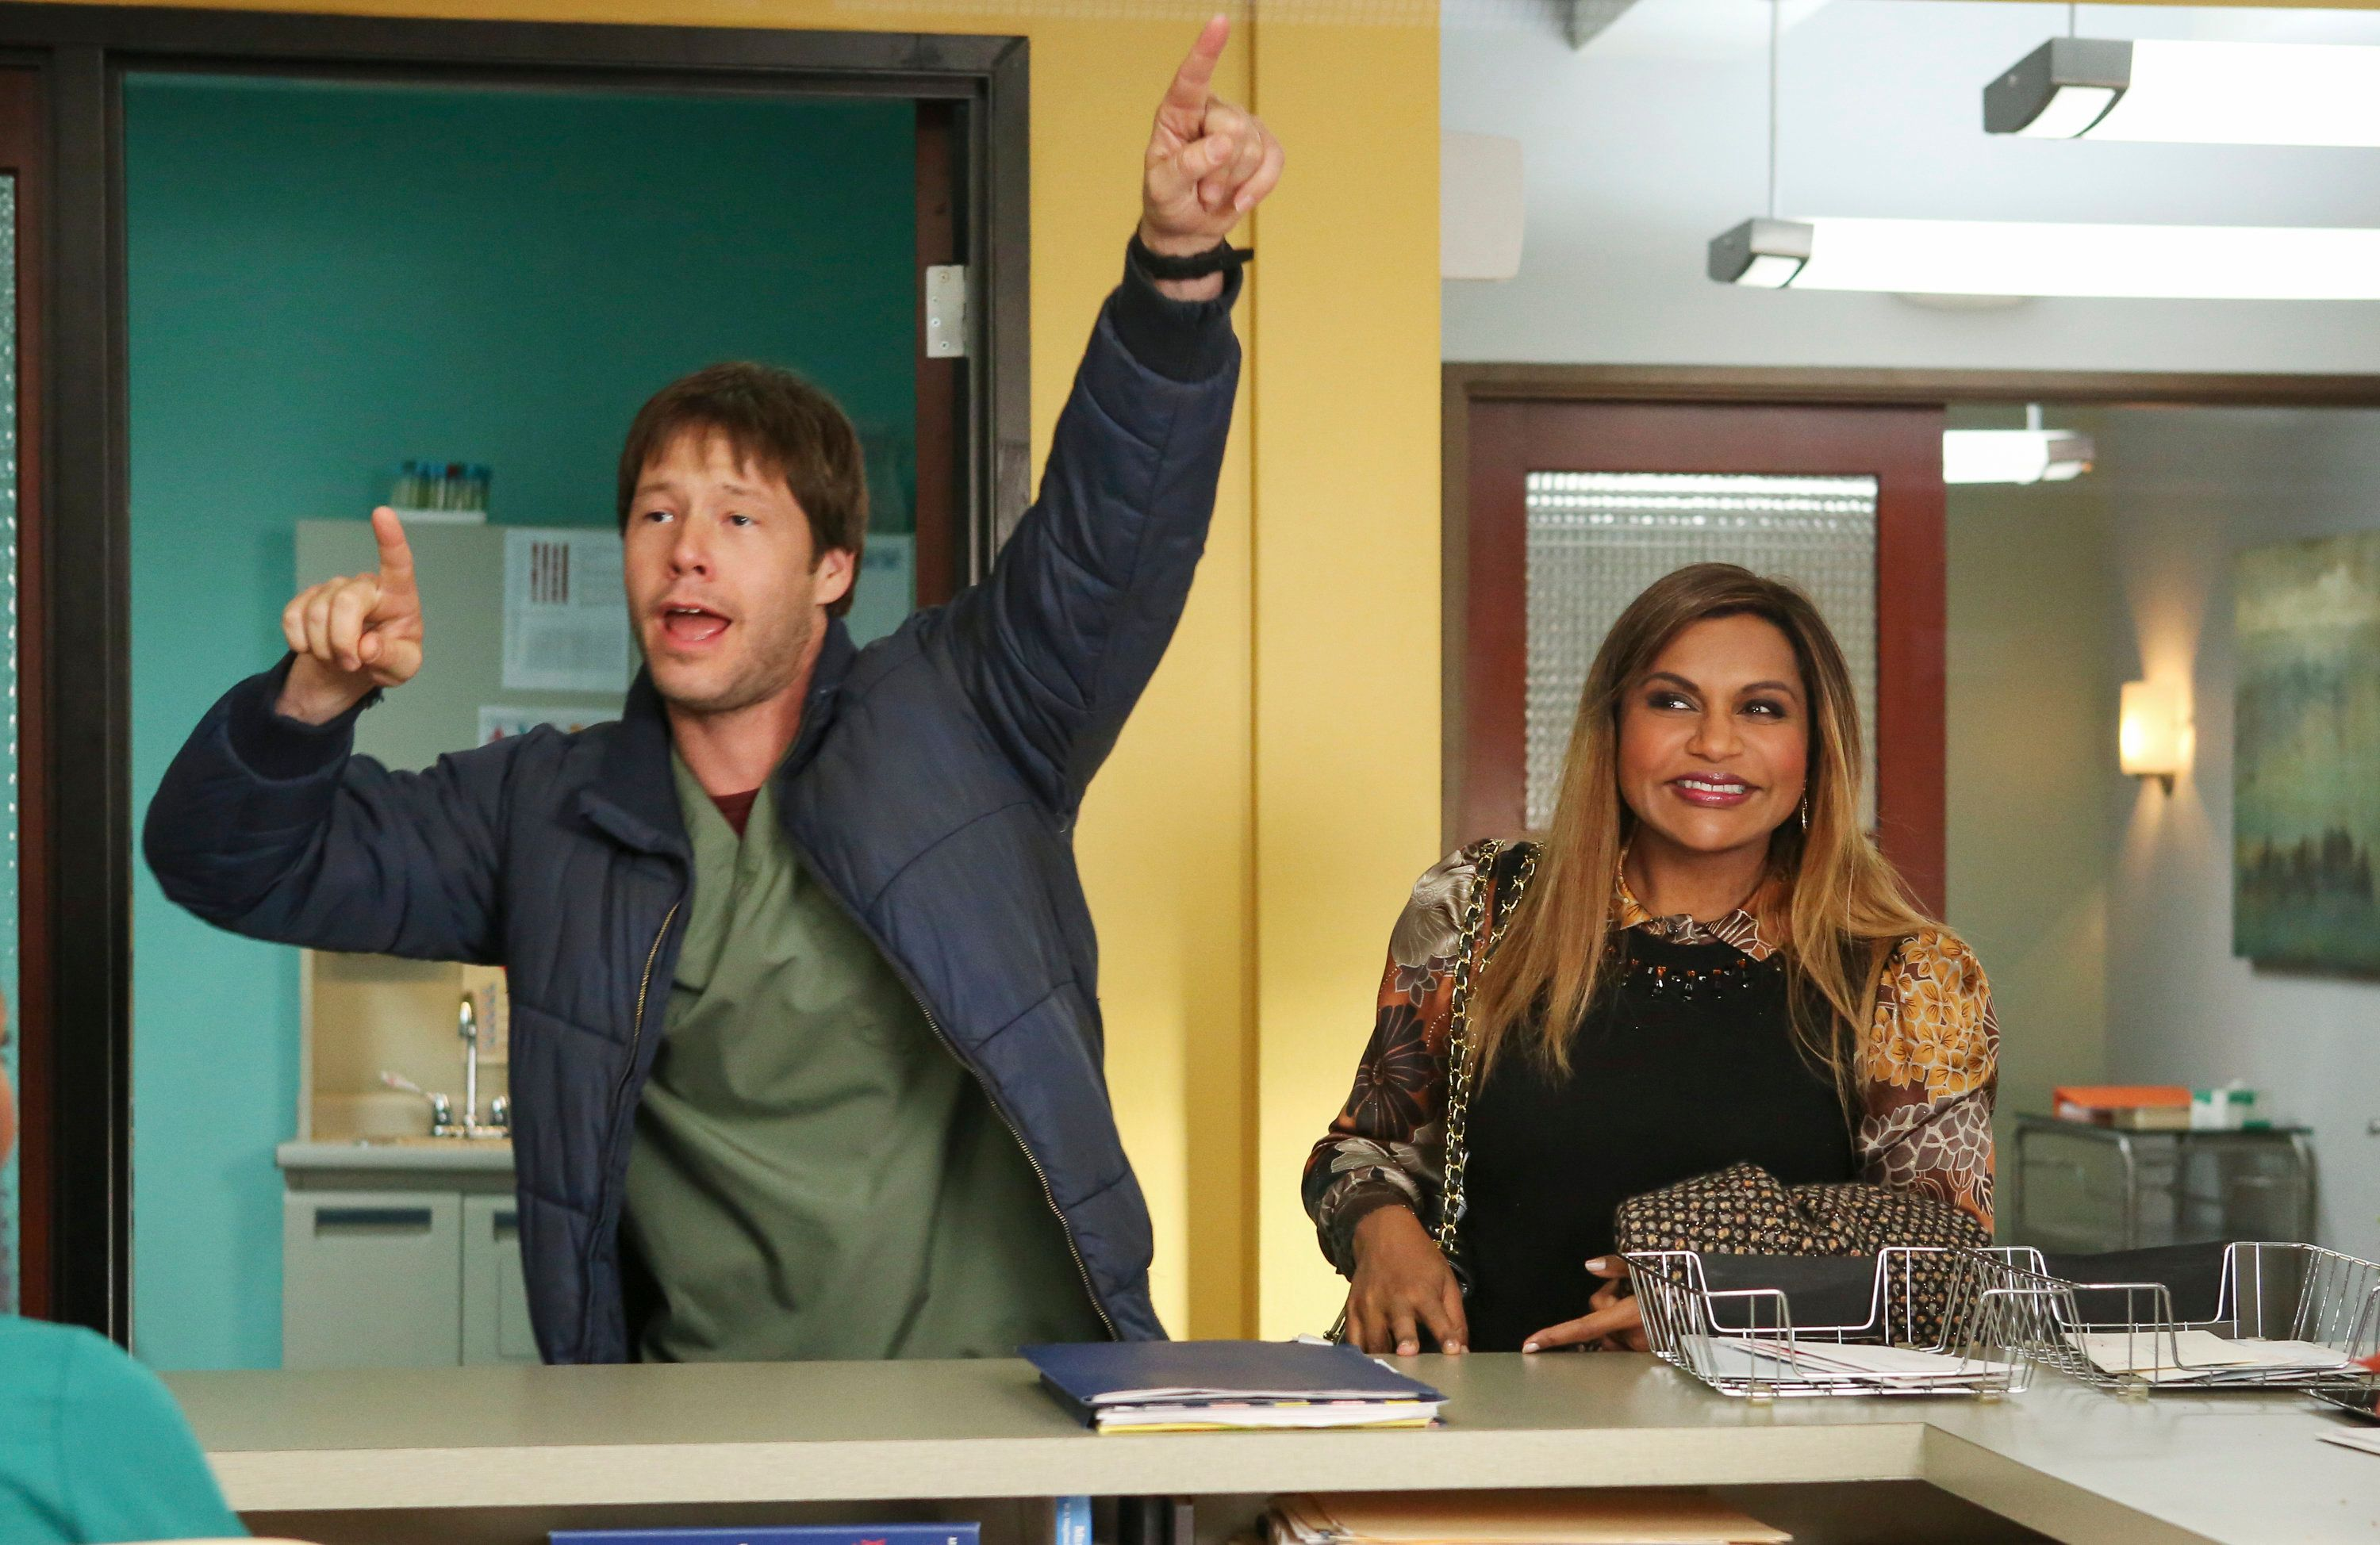 THE MINDY PROJECT -- 'Revenge Of The Nurse' Episode 507 -- Pictured: (l-r) Ike Barinholtz as Morgan Tookers, Mindy Kaling as Mindy Lahiri -- (Photo by: Vivian Zink/Universal Television/NBCU Photo Bank via Getty Images)